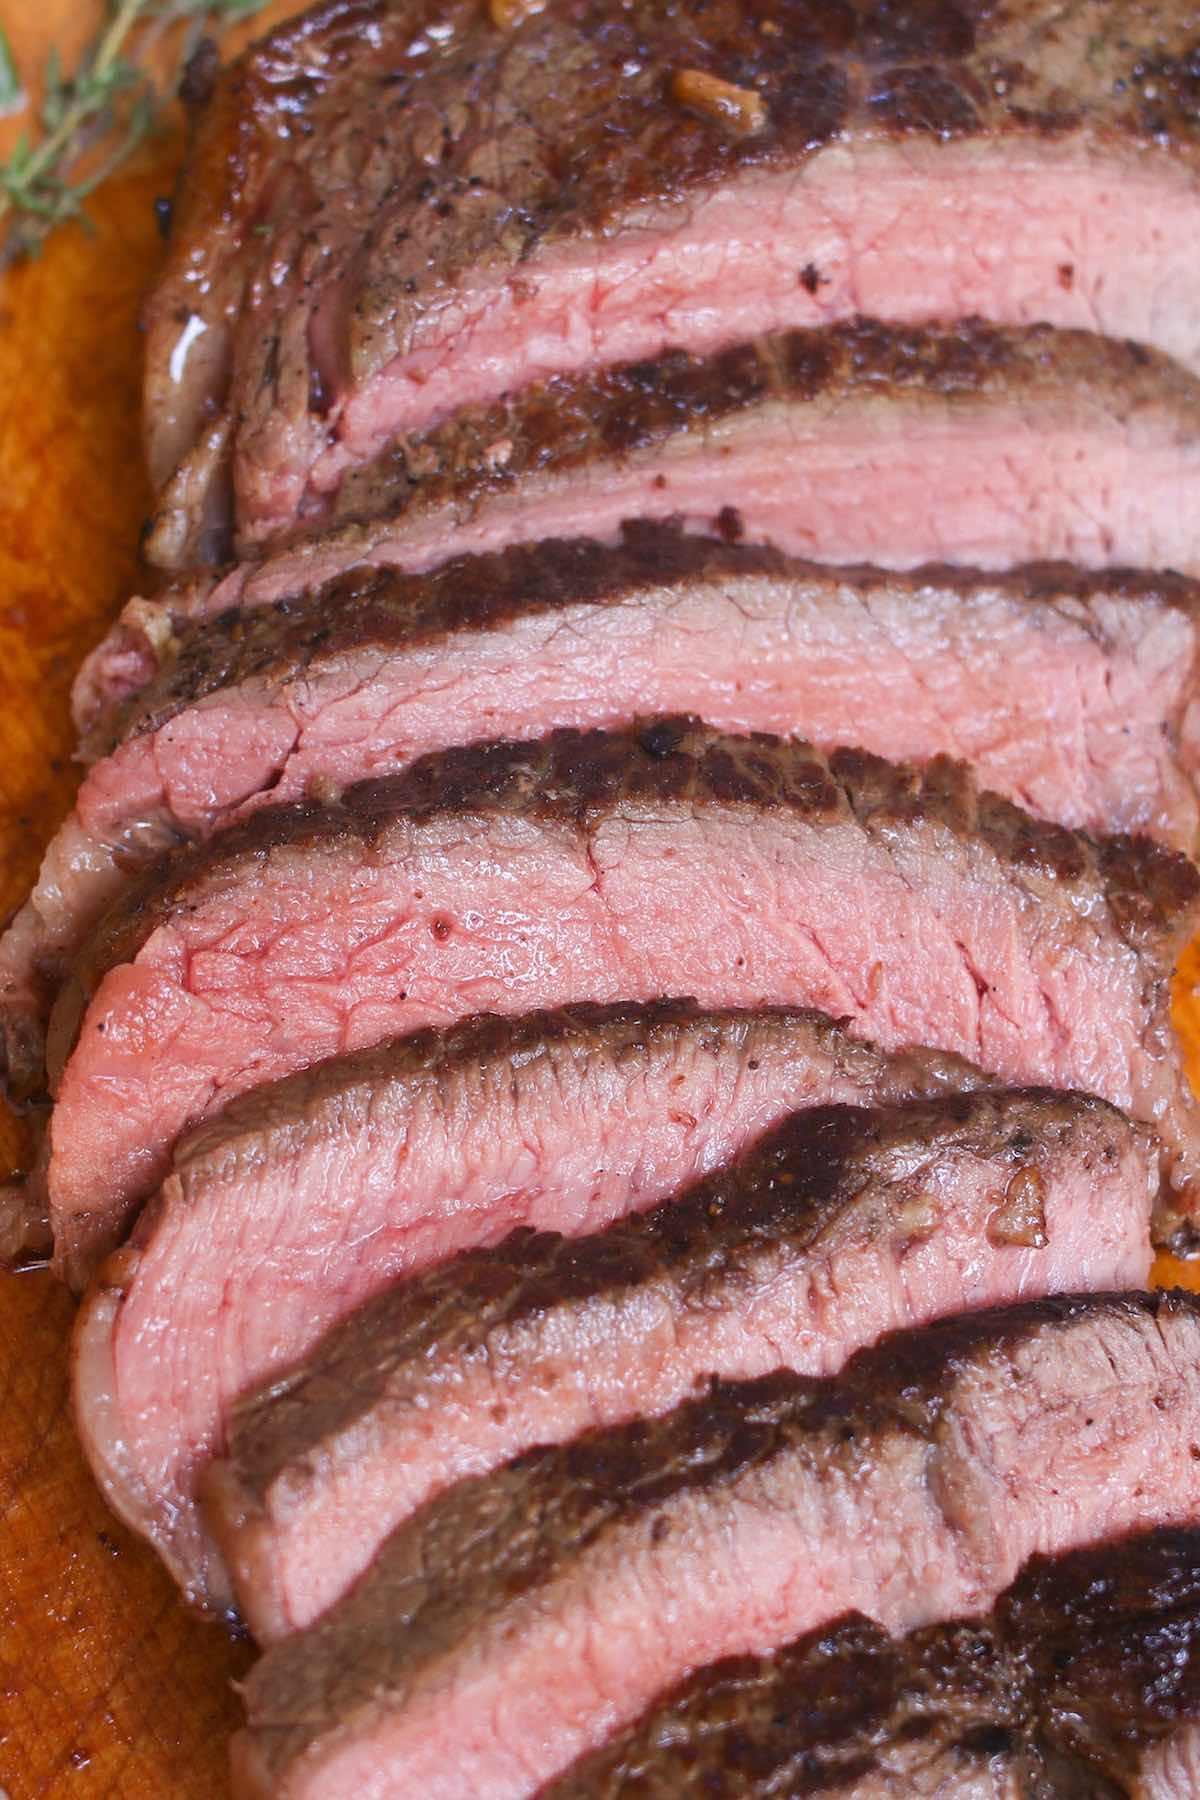 Closeup of pan seared sirloin steak cooked to medium doneness and sliced thinly